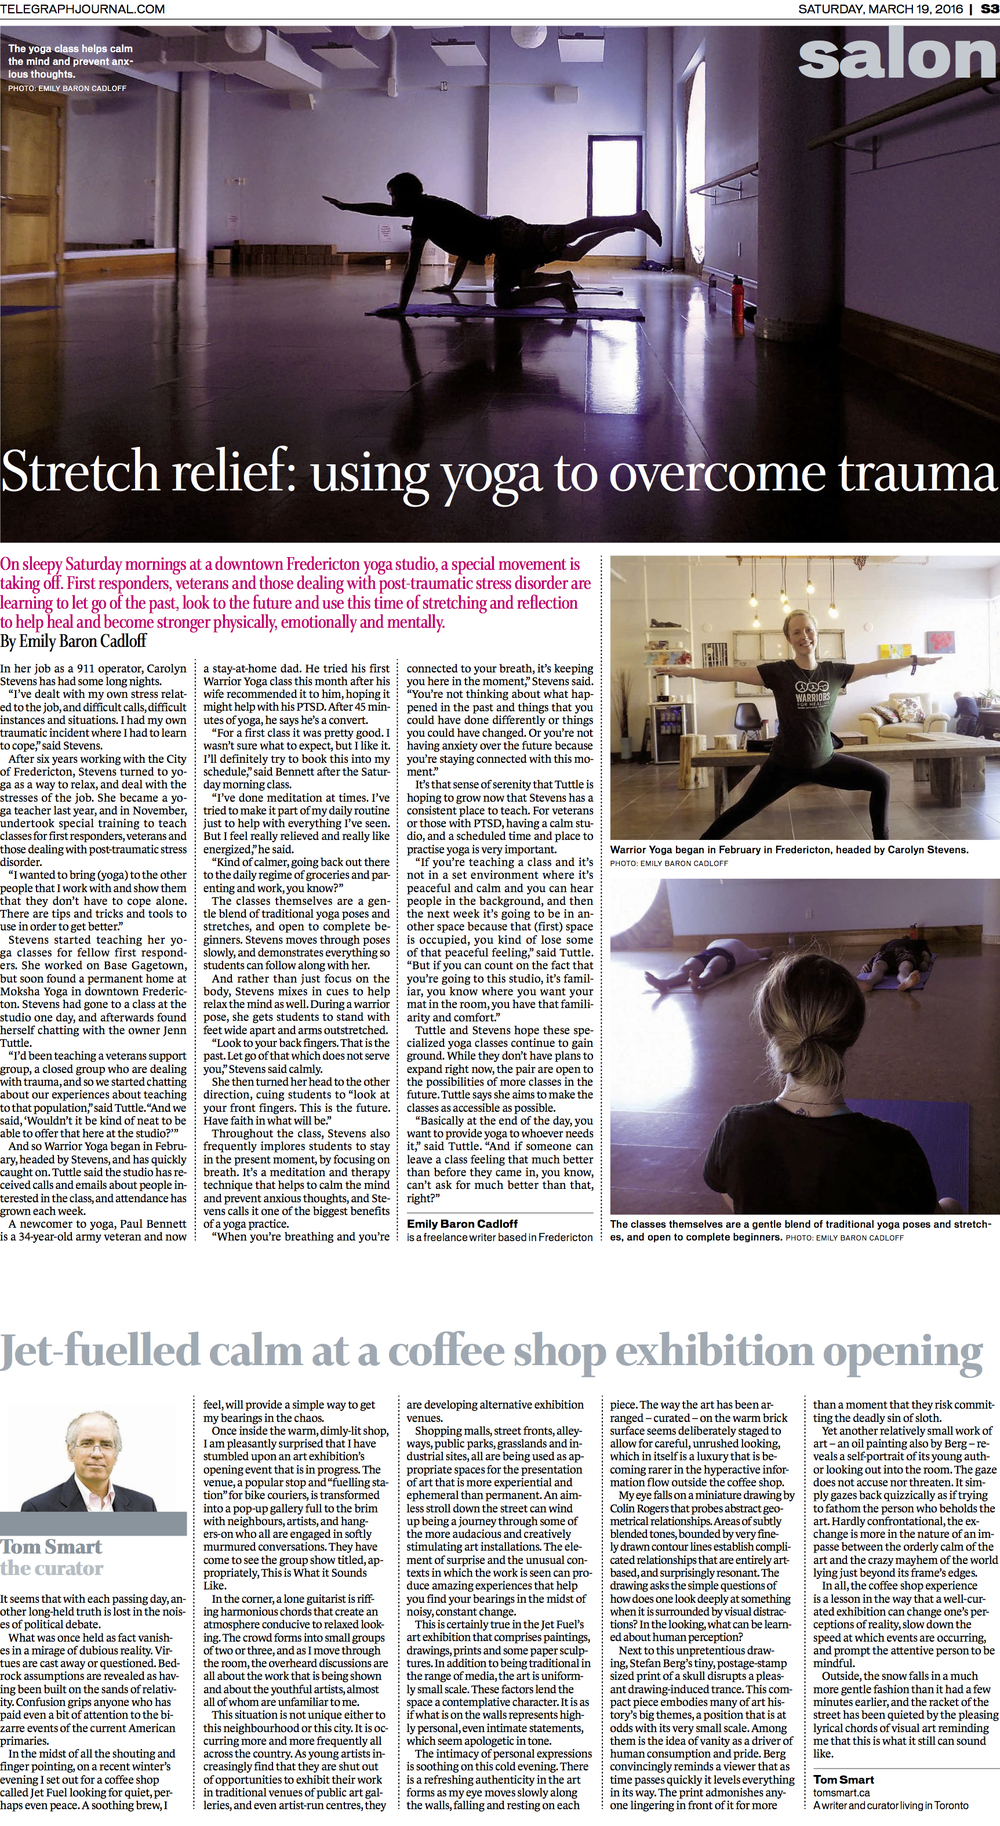 Feature on yoga for PTSD survivors. New Brunswick Telegraph-Journal, March 2016